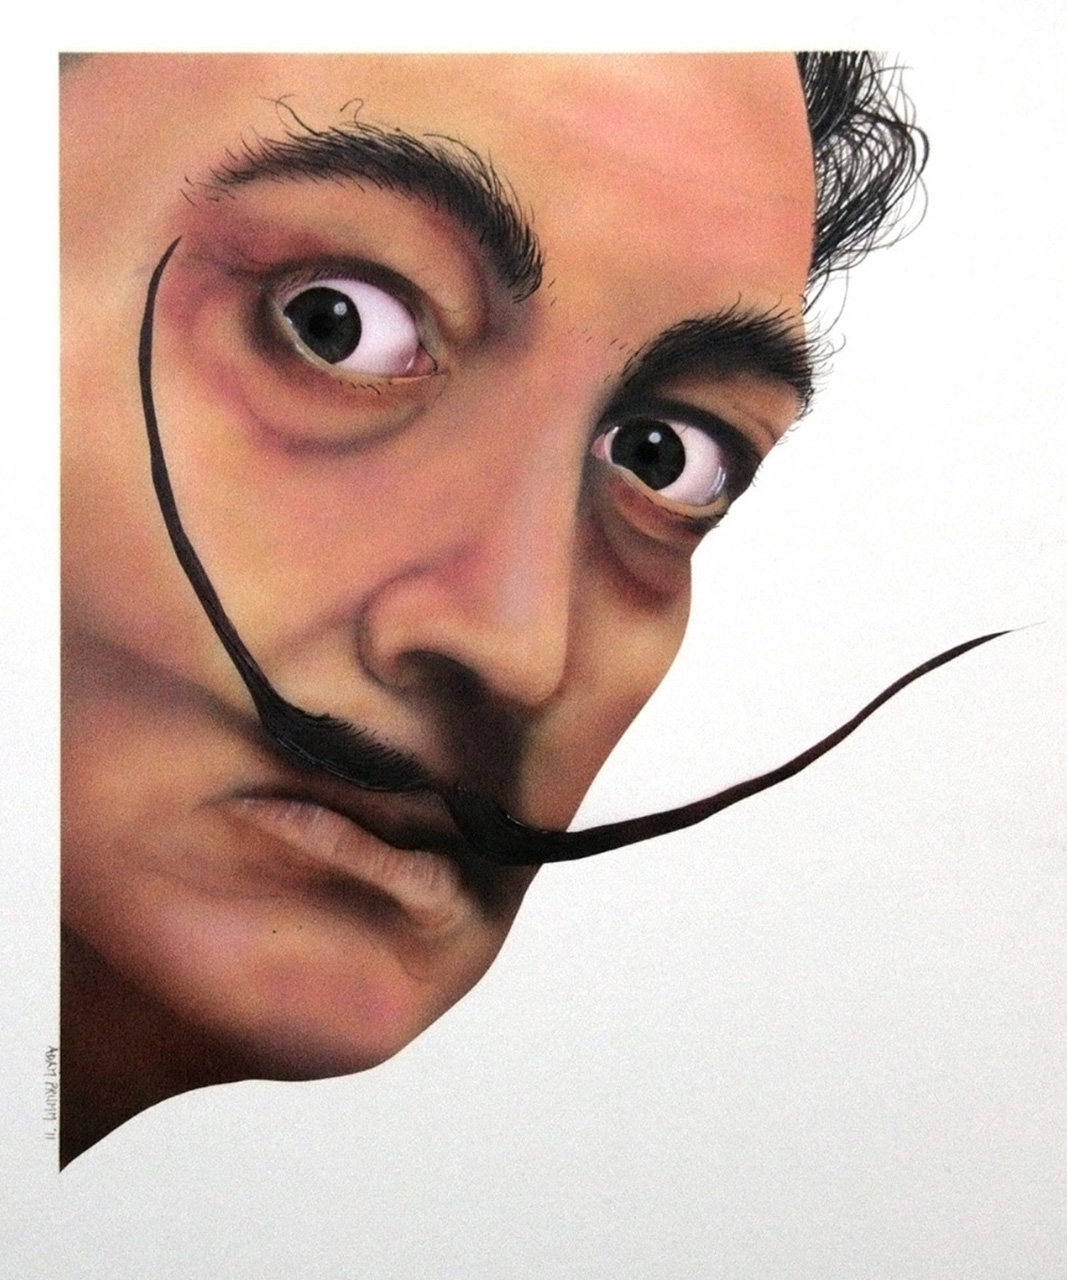 """Airbrush and brush on illustration board, 15""""x20"""""""